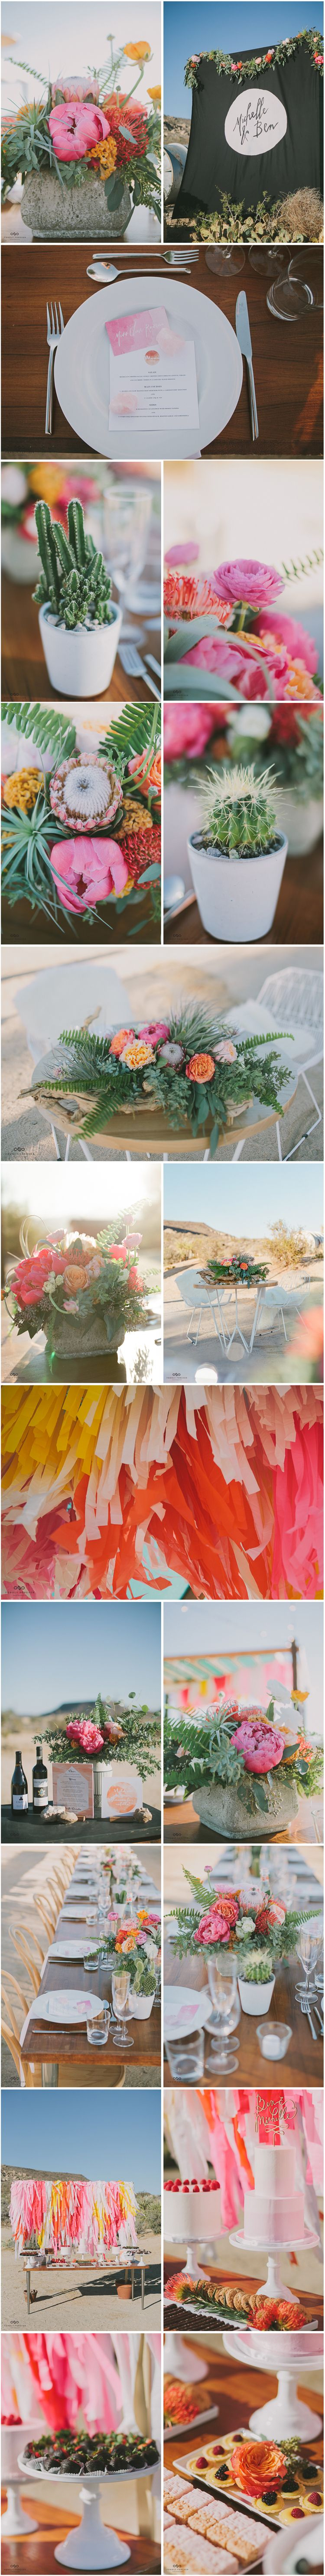 Beautiful table flowers (and cacti), and a fun, colorful streamer backdrop for…